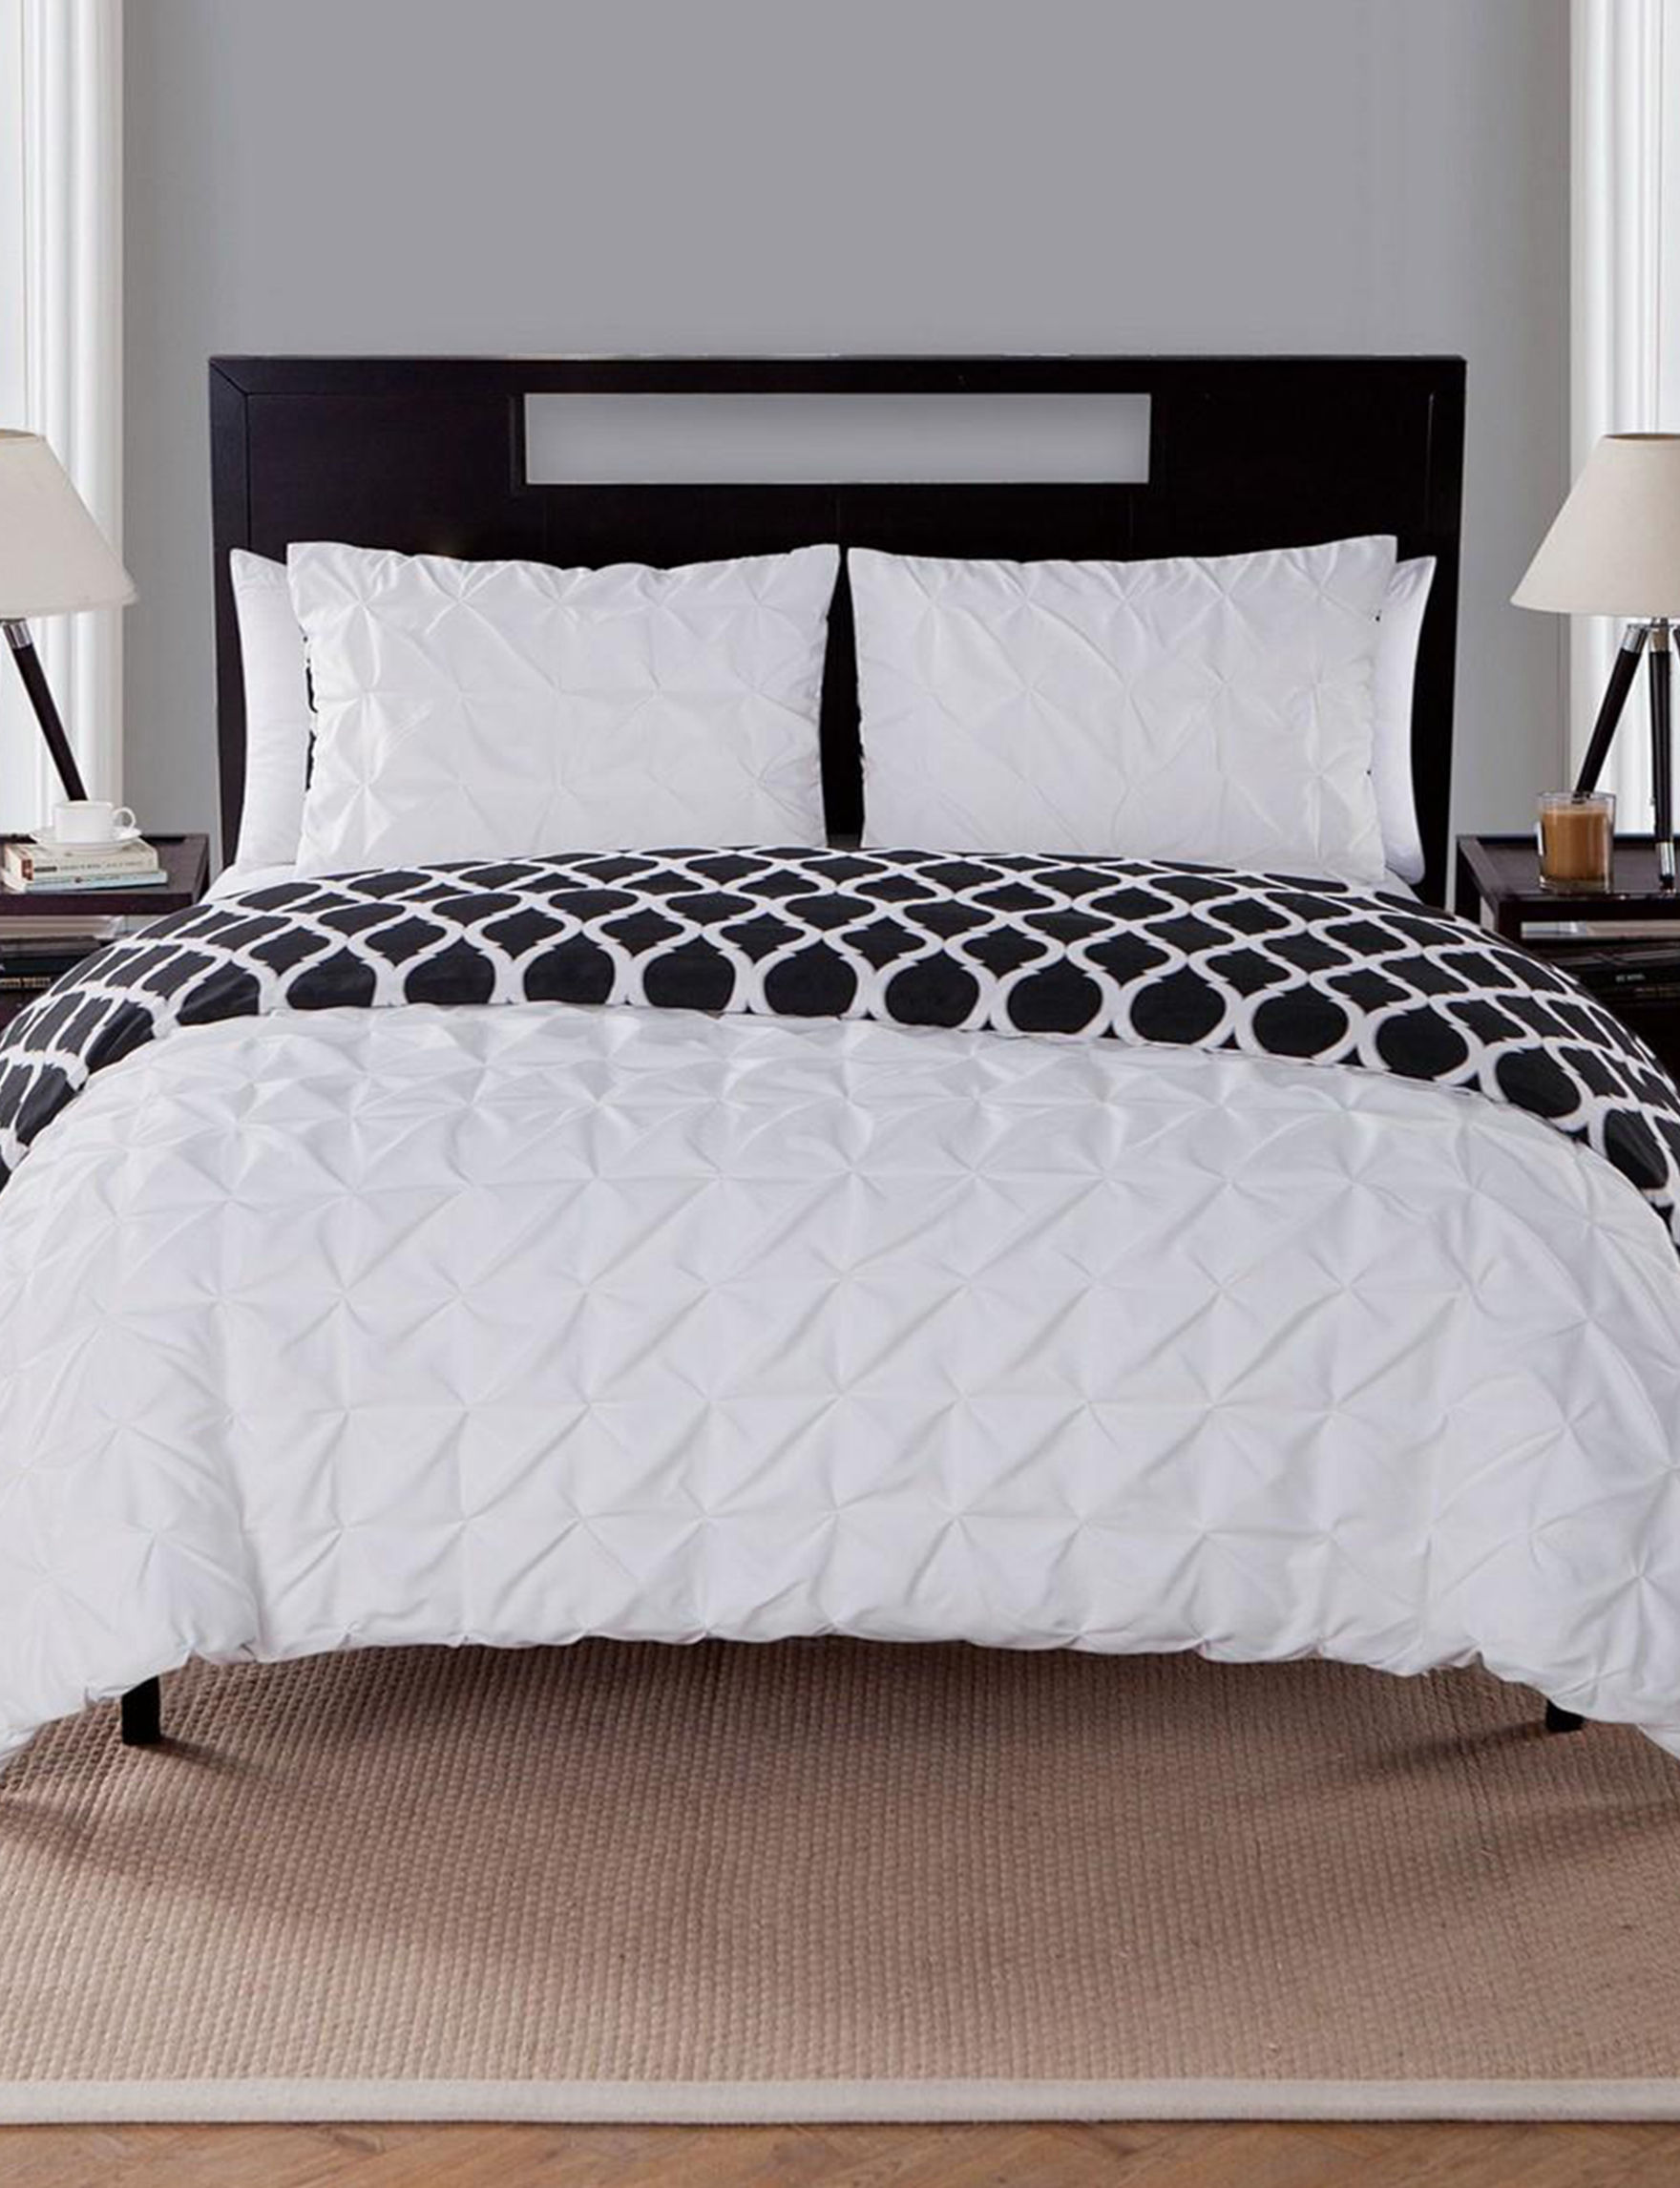 VCNY Home White Comforters & Comforter Sets